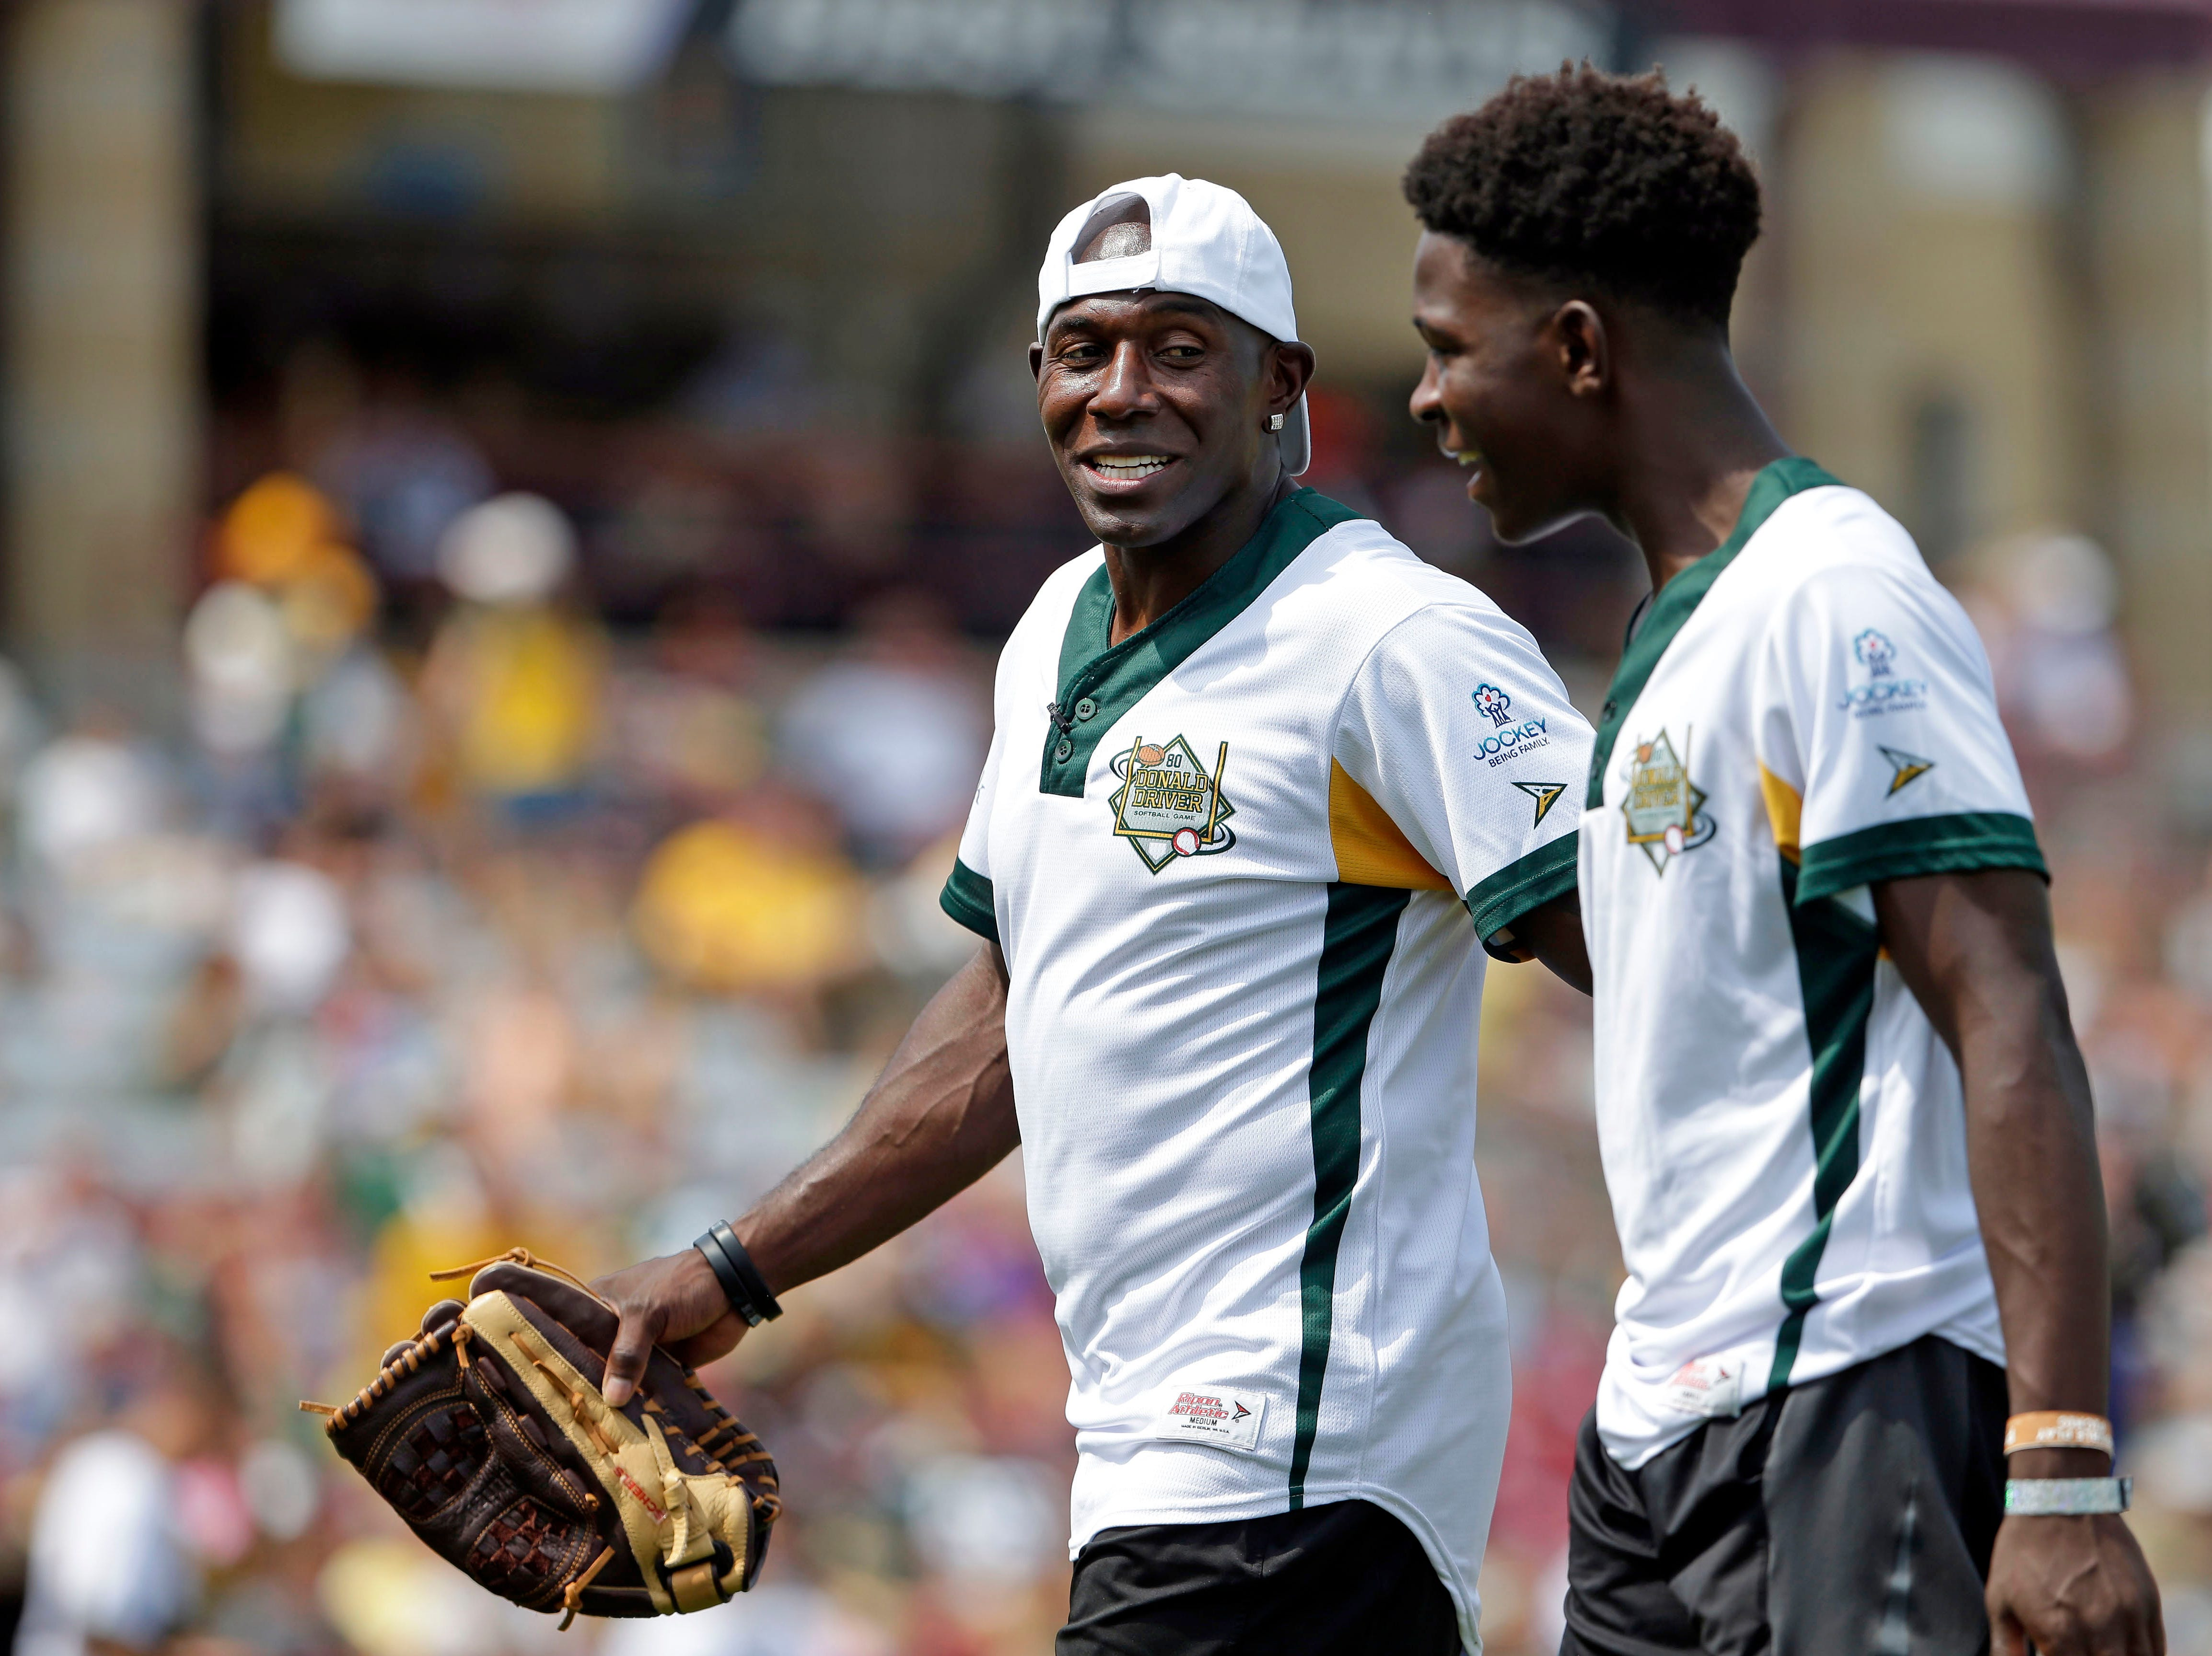 Donald Driver and his family are joined by friends for a charity softball game Sunday, August 5, 2018, at Neuroscience Group Field at Fox Cities Stadium in Grand Chute, Wis.